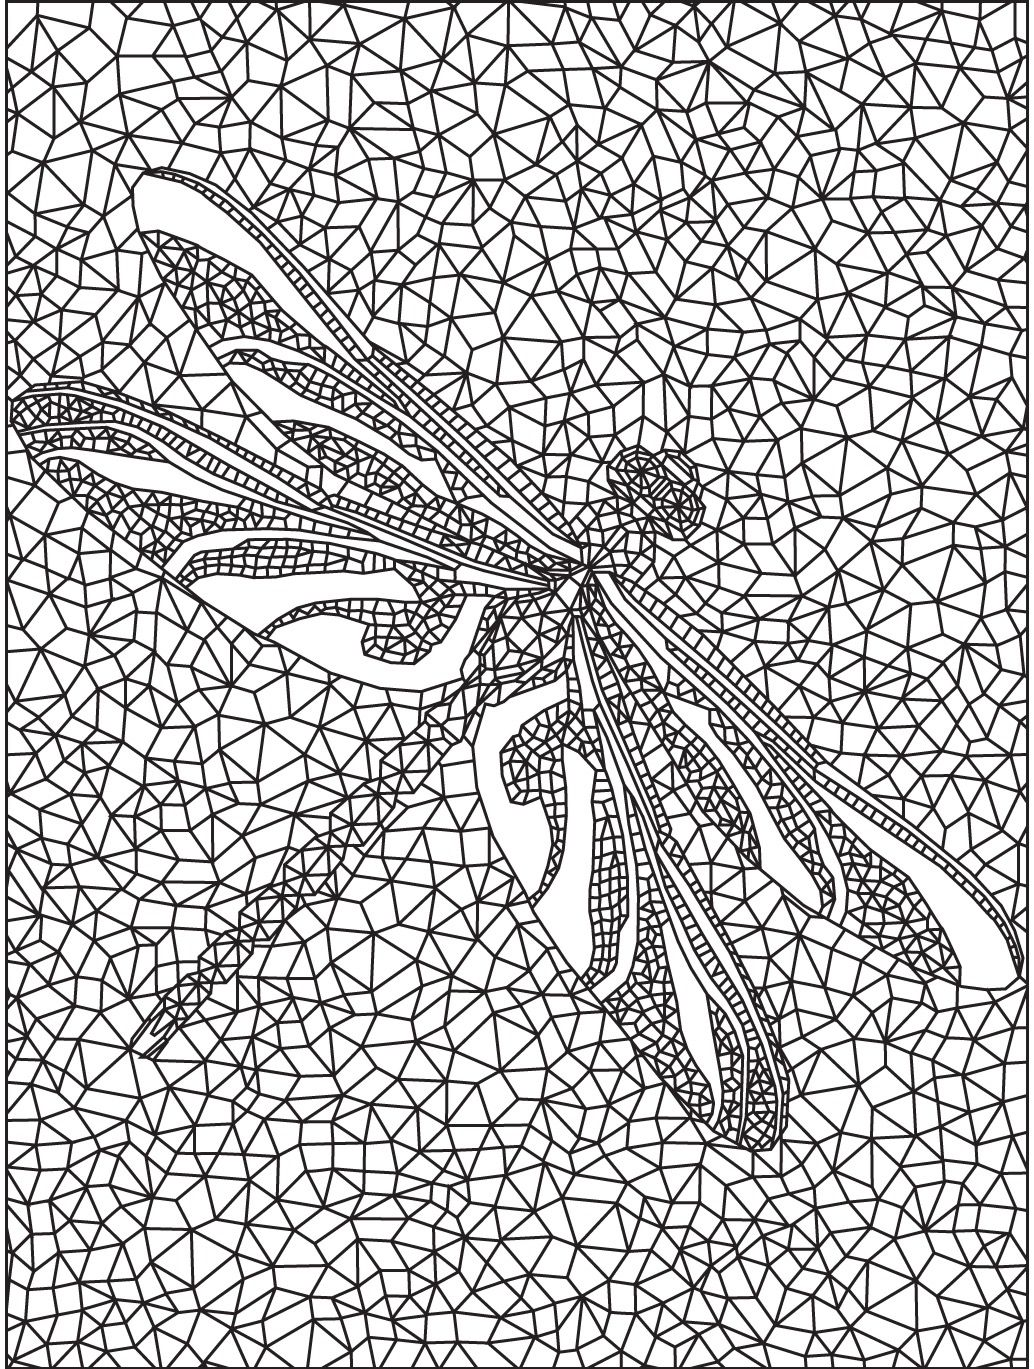 Geometric Dragonfly colouring page | Colorish App : free coloring ...